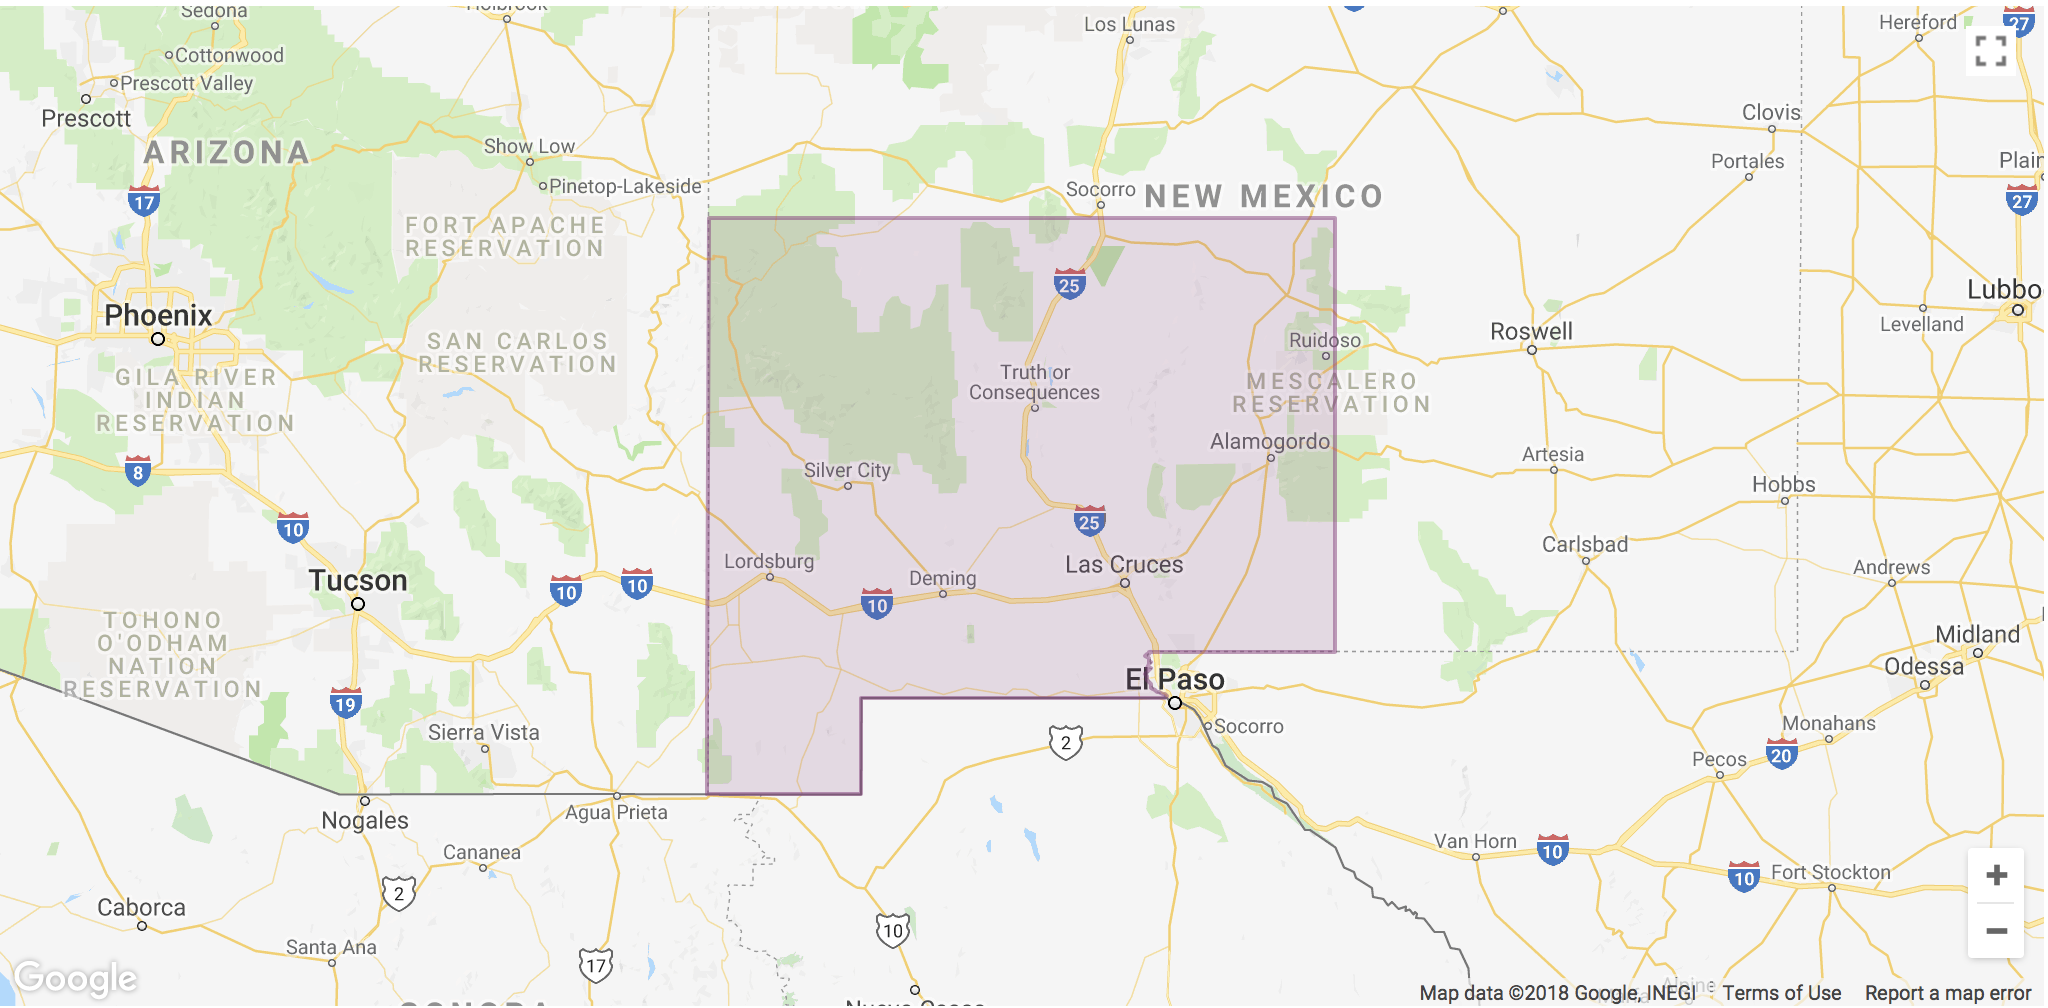 Lyft Las Cruces Area Coverage map